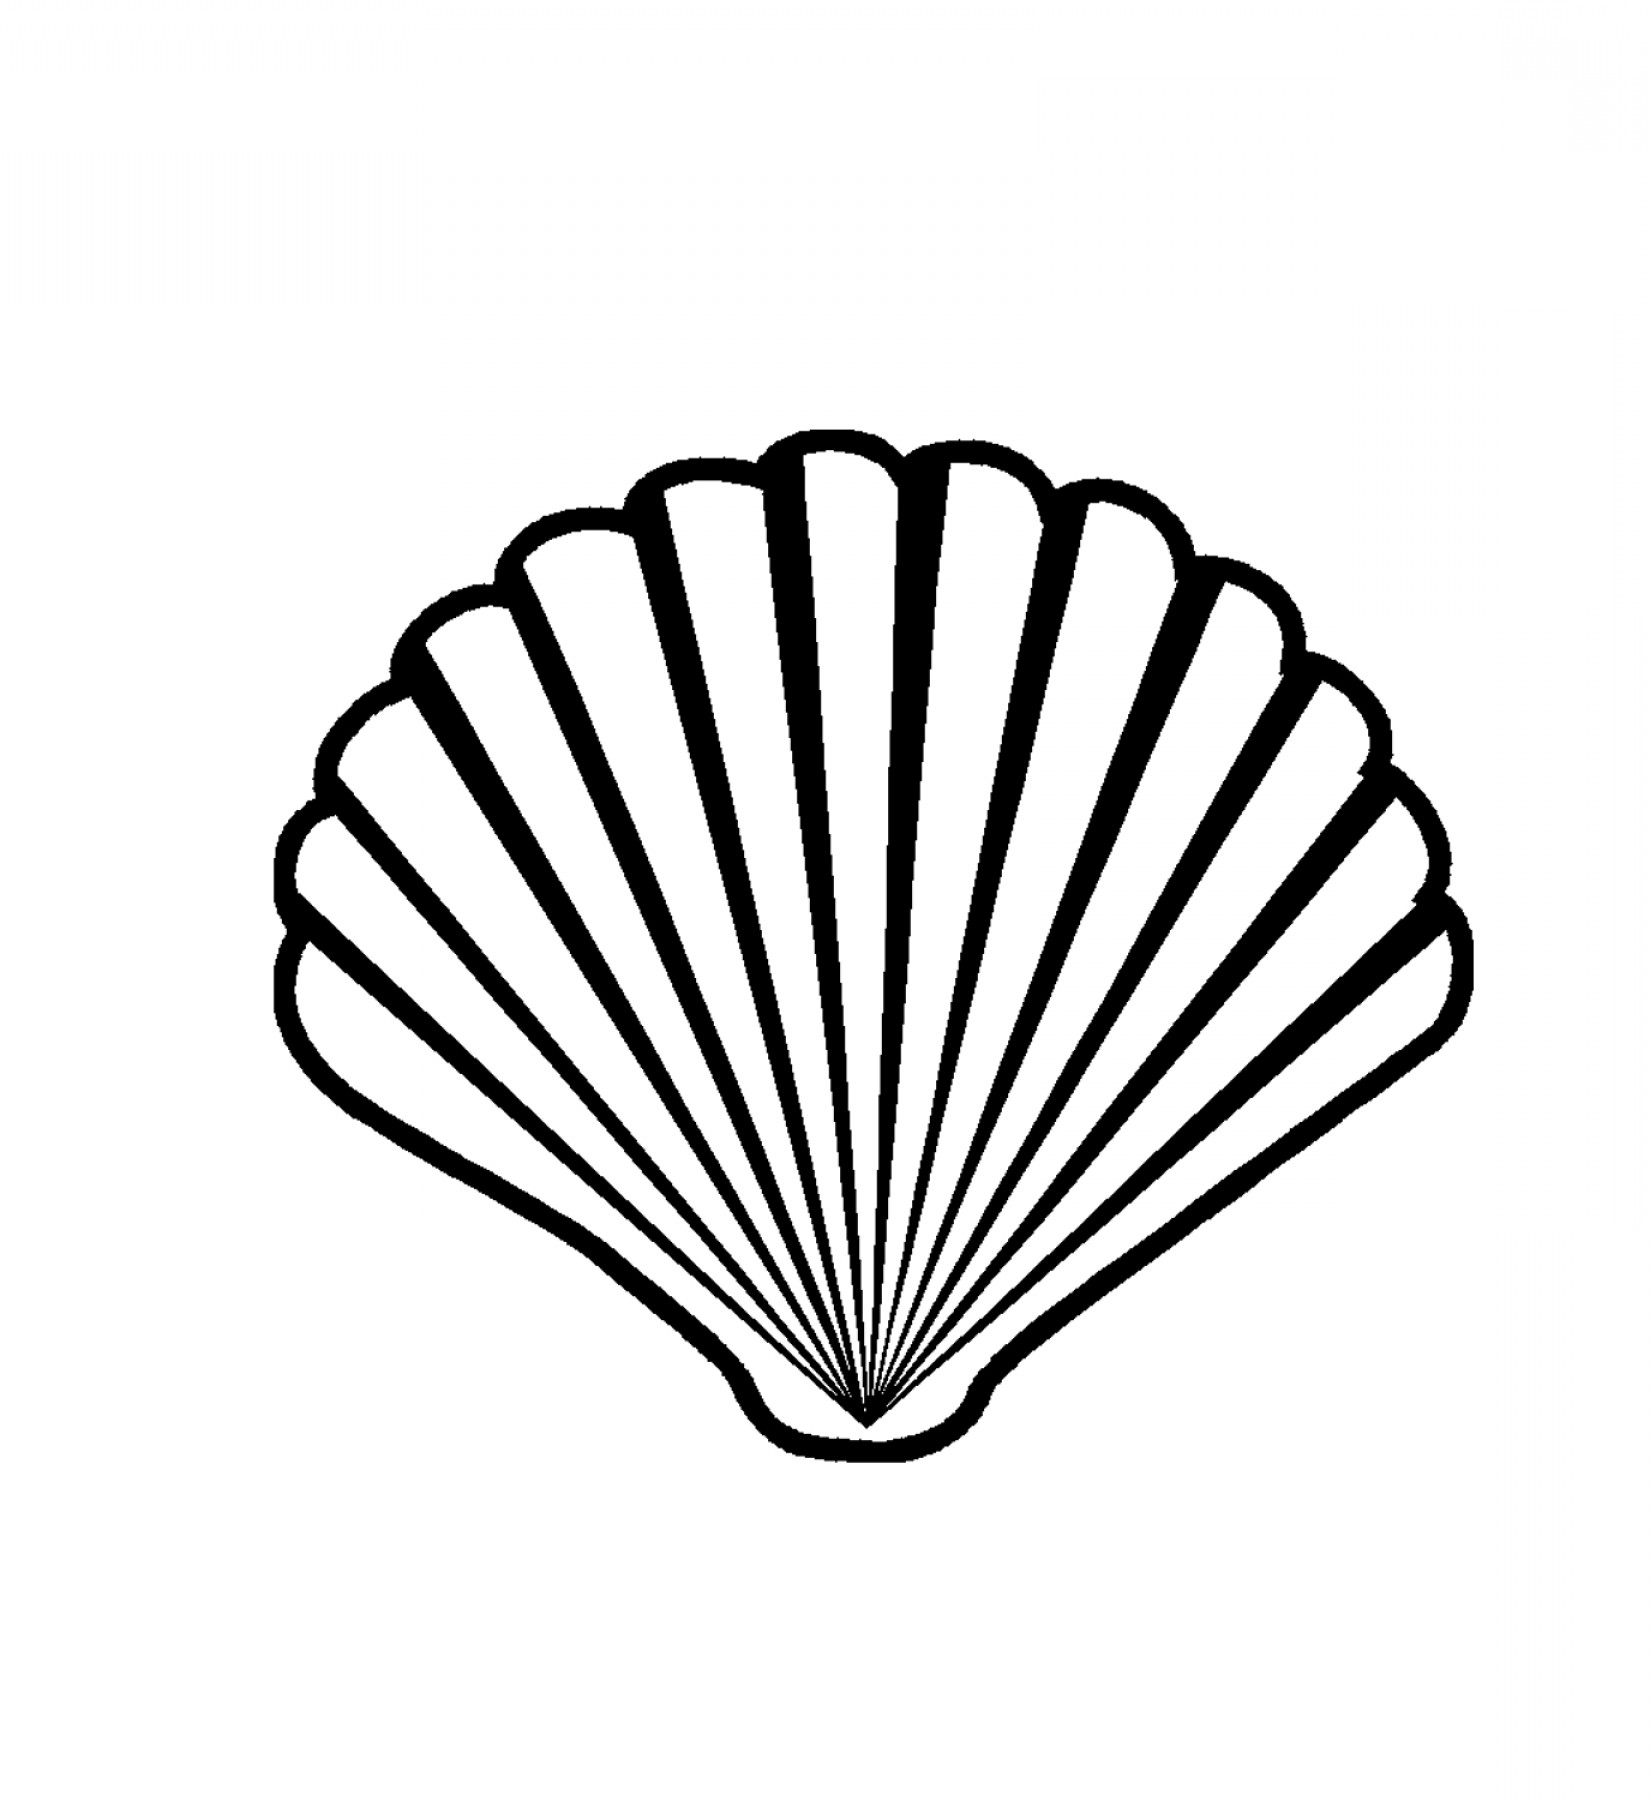 1650x1800 Scallop Shell Clipart, Free Scallop Shell Clipart